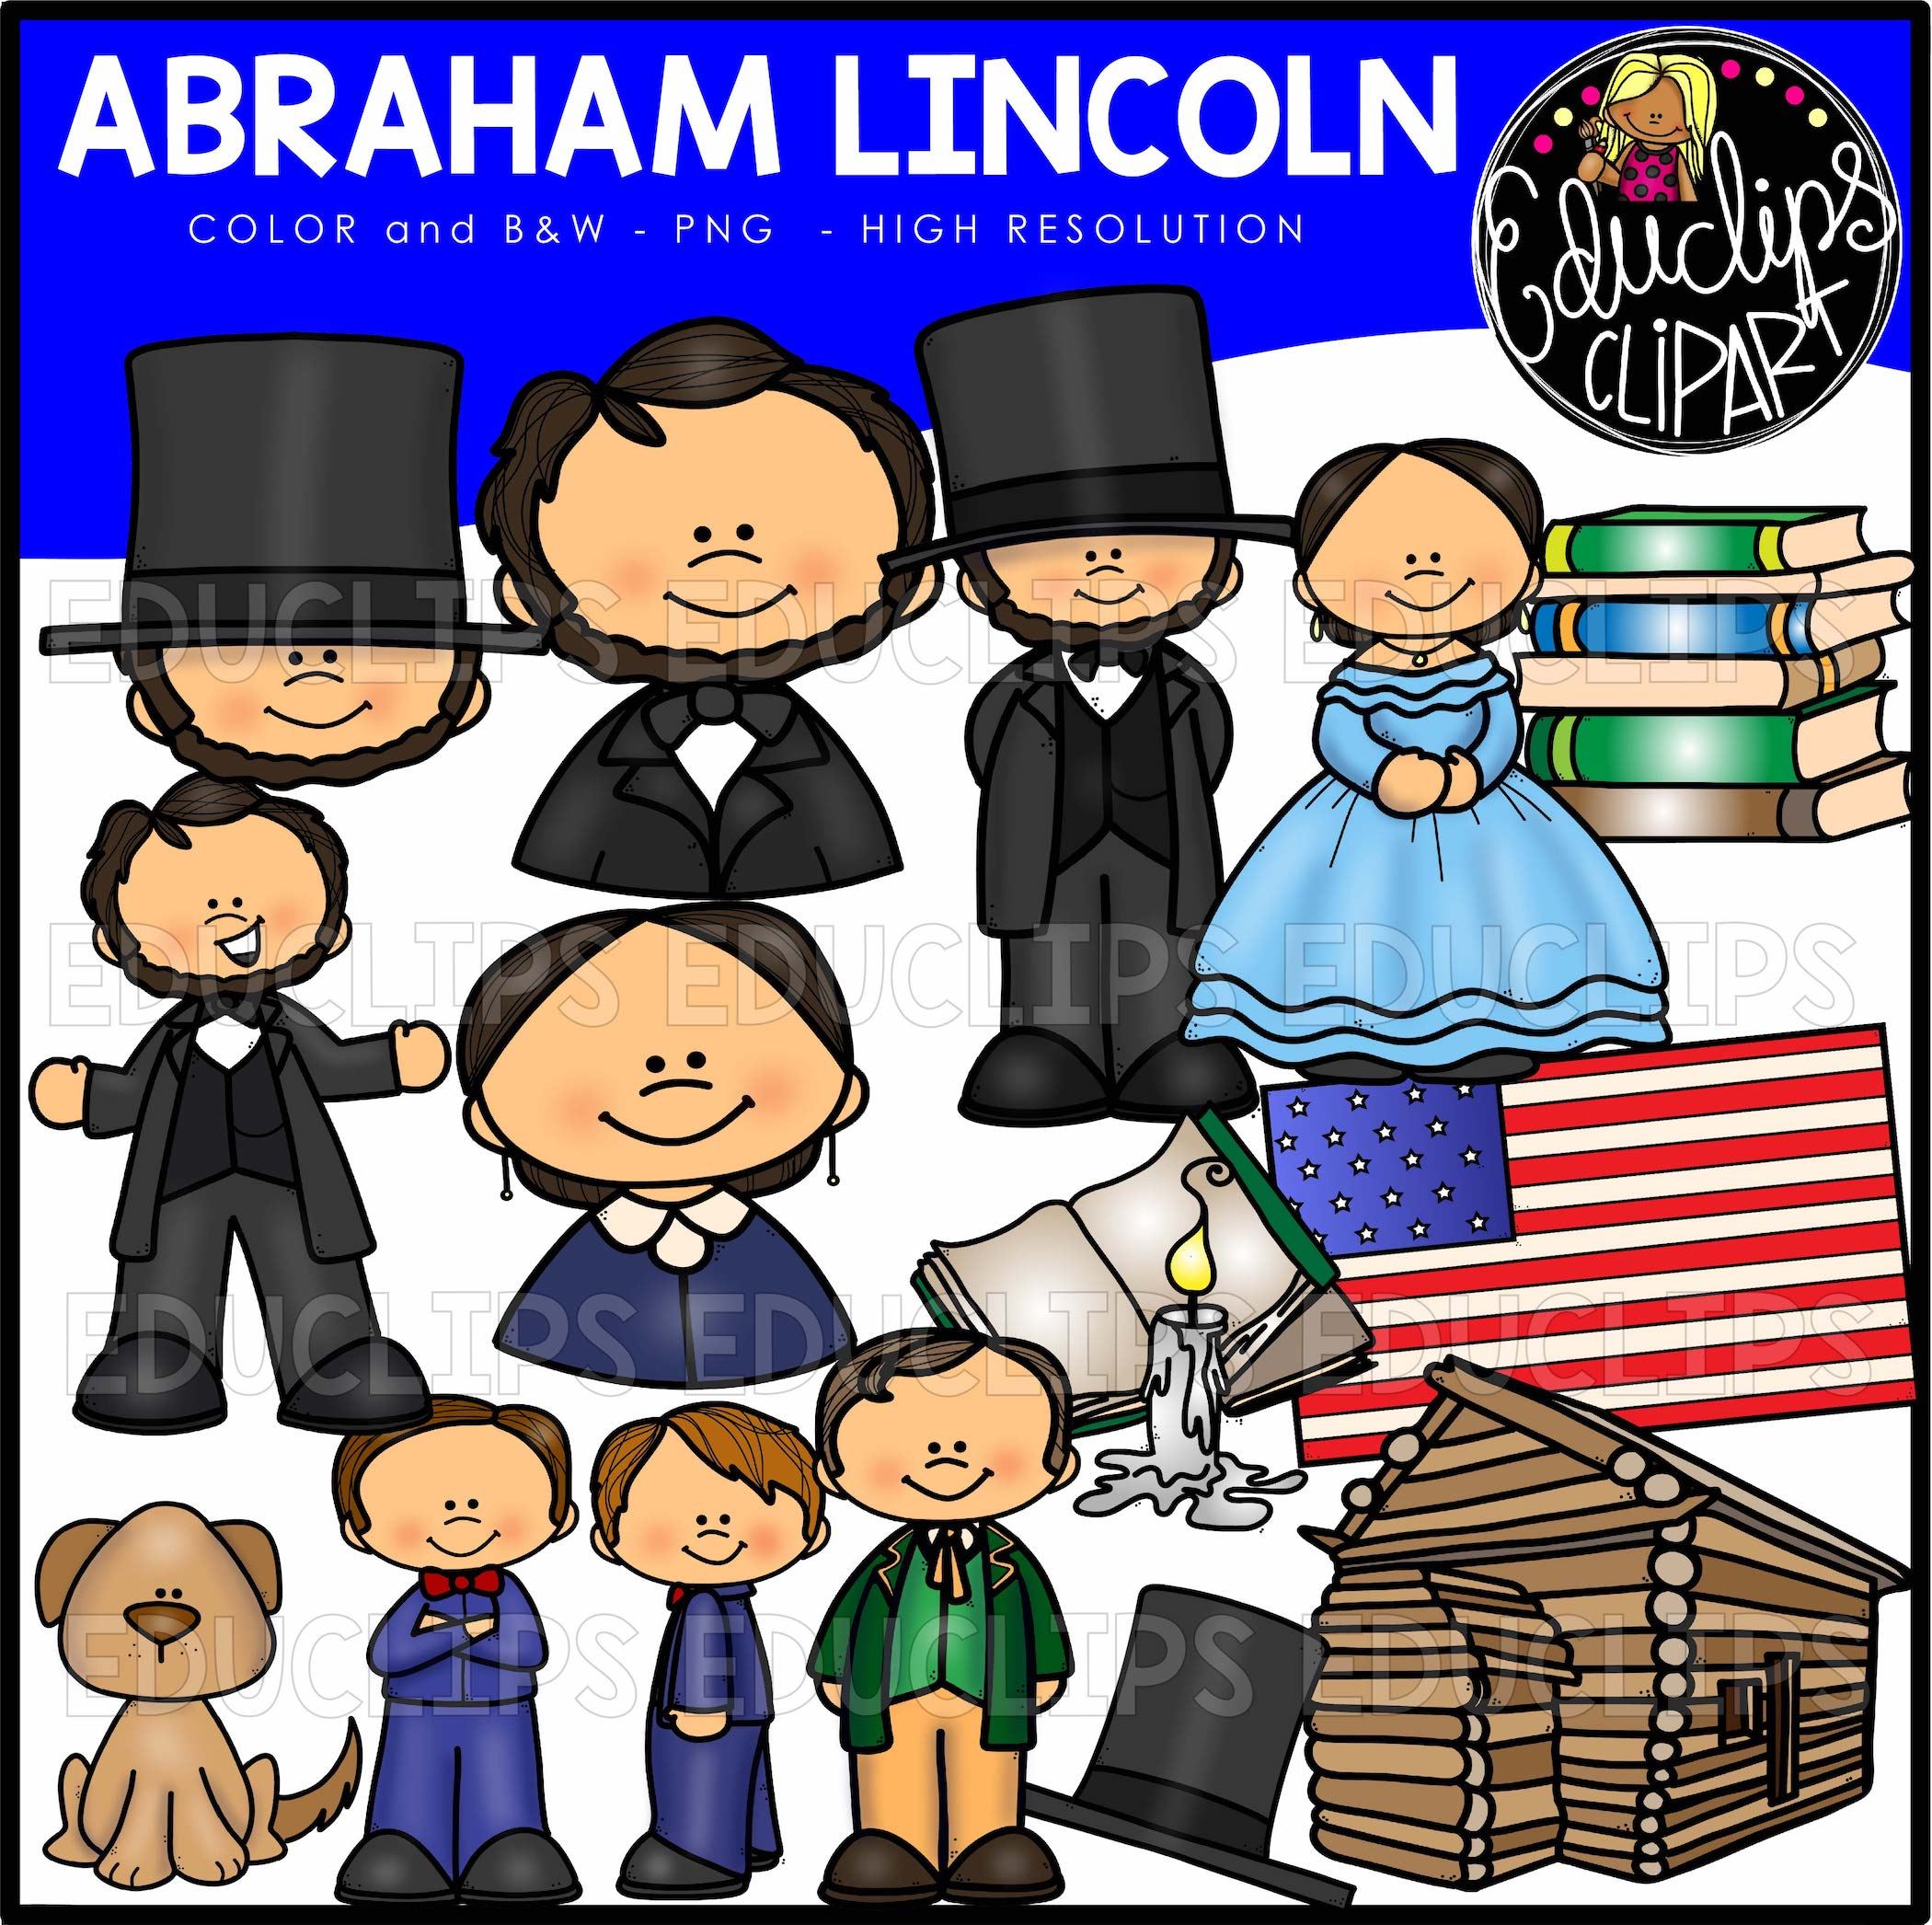 Abraham Lincoln Clipart Template Abraham Lincoln Template